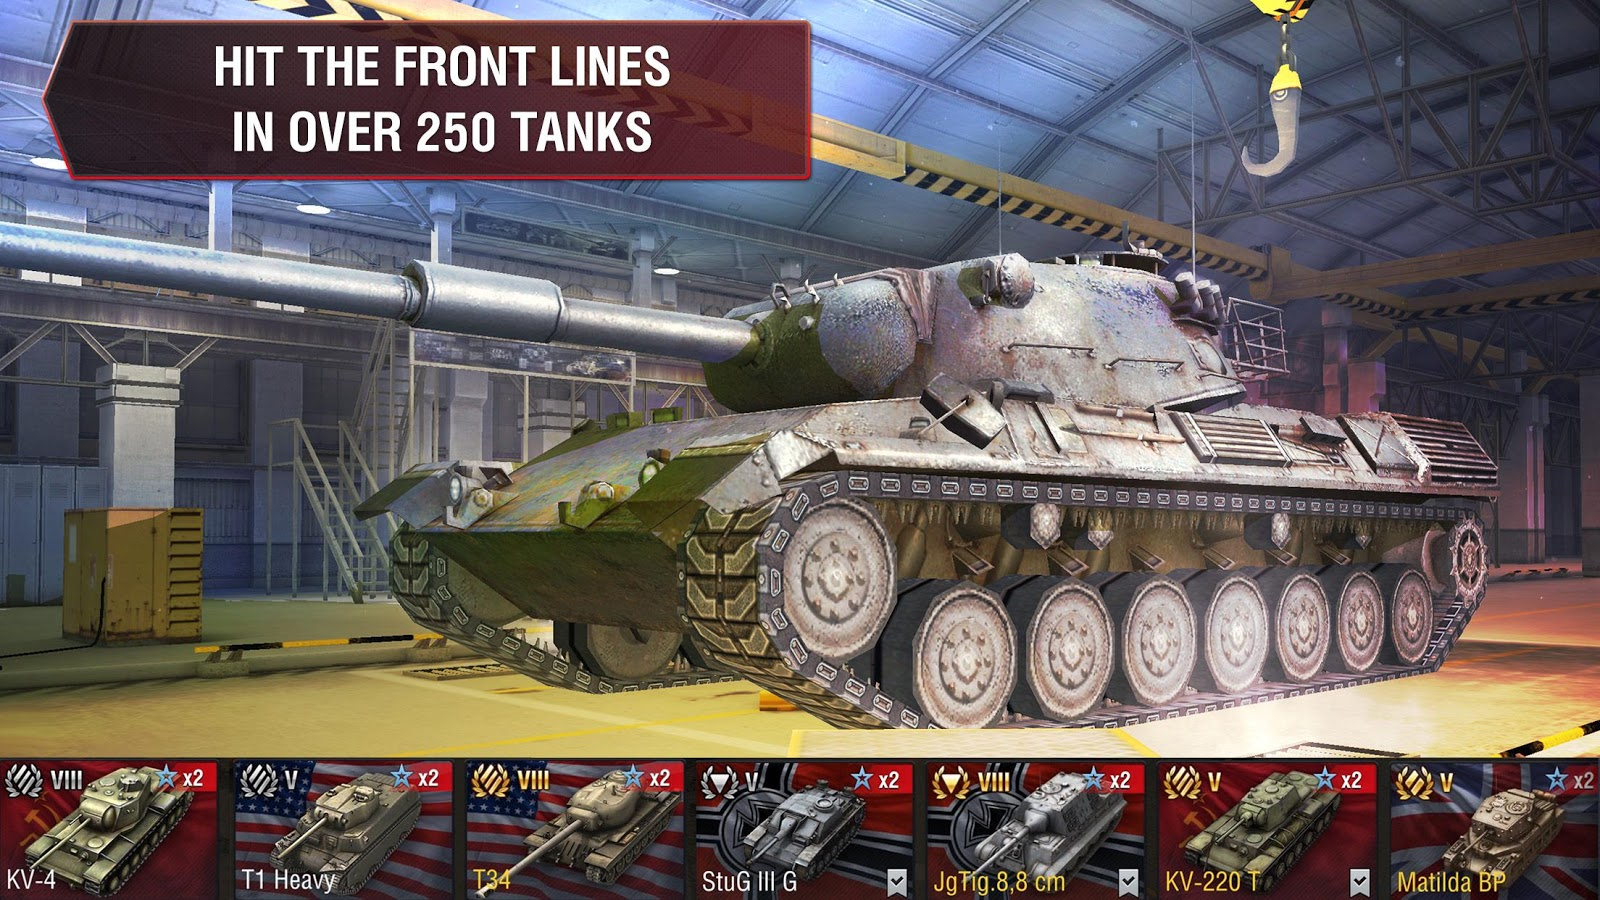 Download Update World of Tanks Blitz Apk terbaru 2017